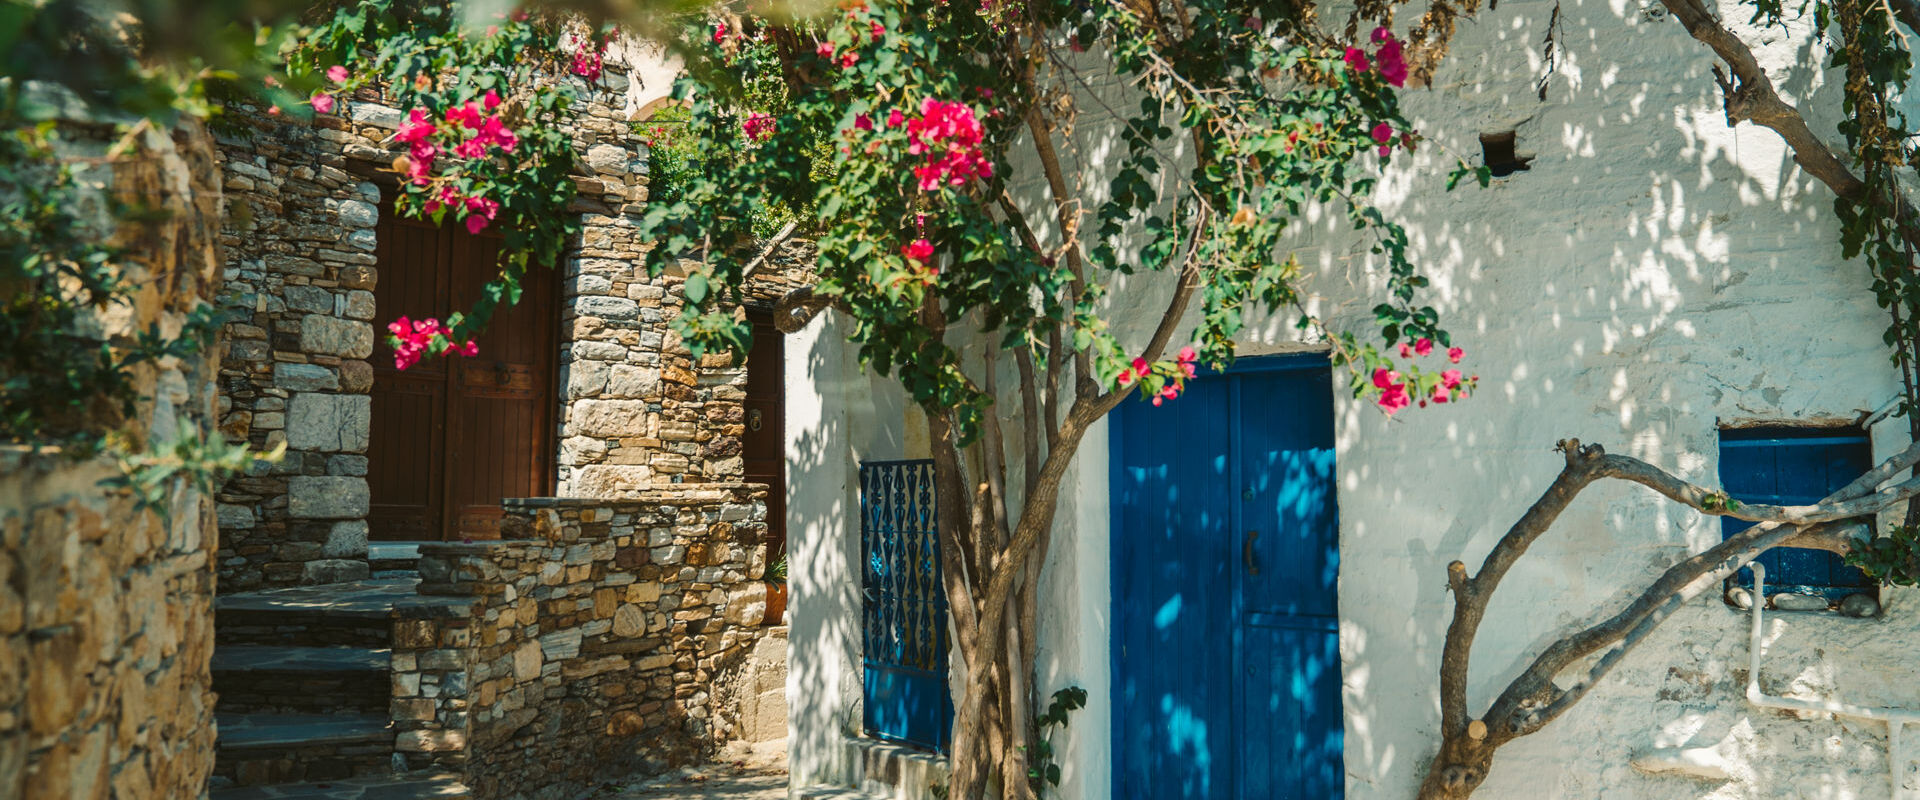 Sangri, a village with an Upper and Lower part, combining medieval architecture and Cycladic